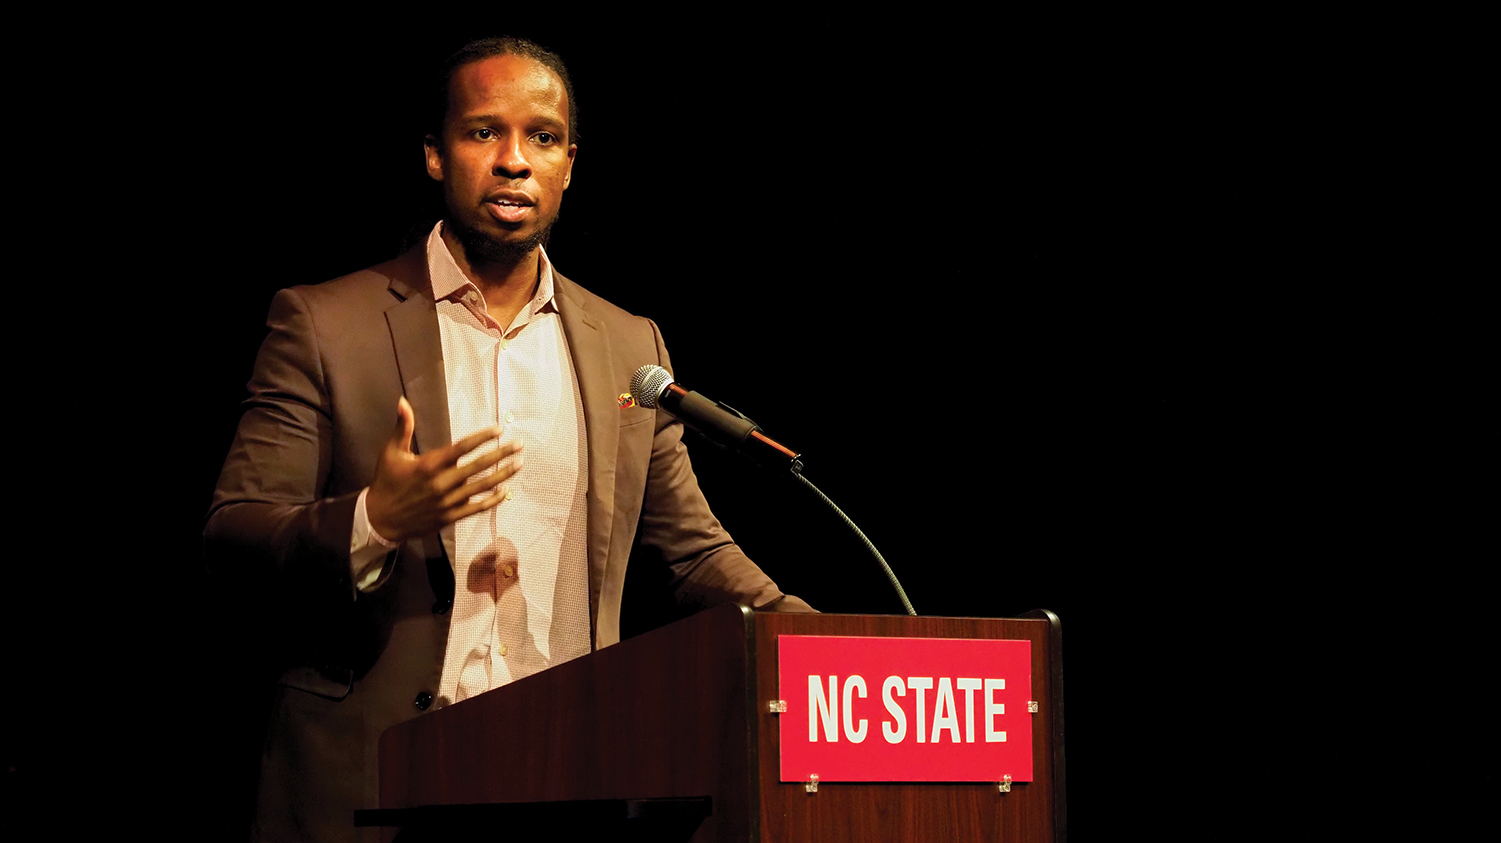 Historian and author Ibram X. Kendi speaks at Talley Student Union's Stewart Theatre.